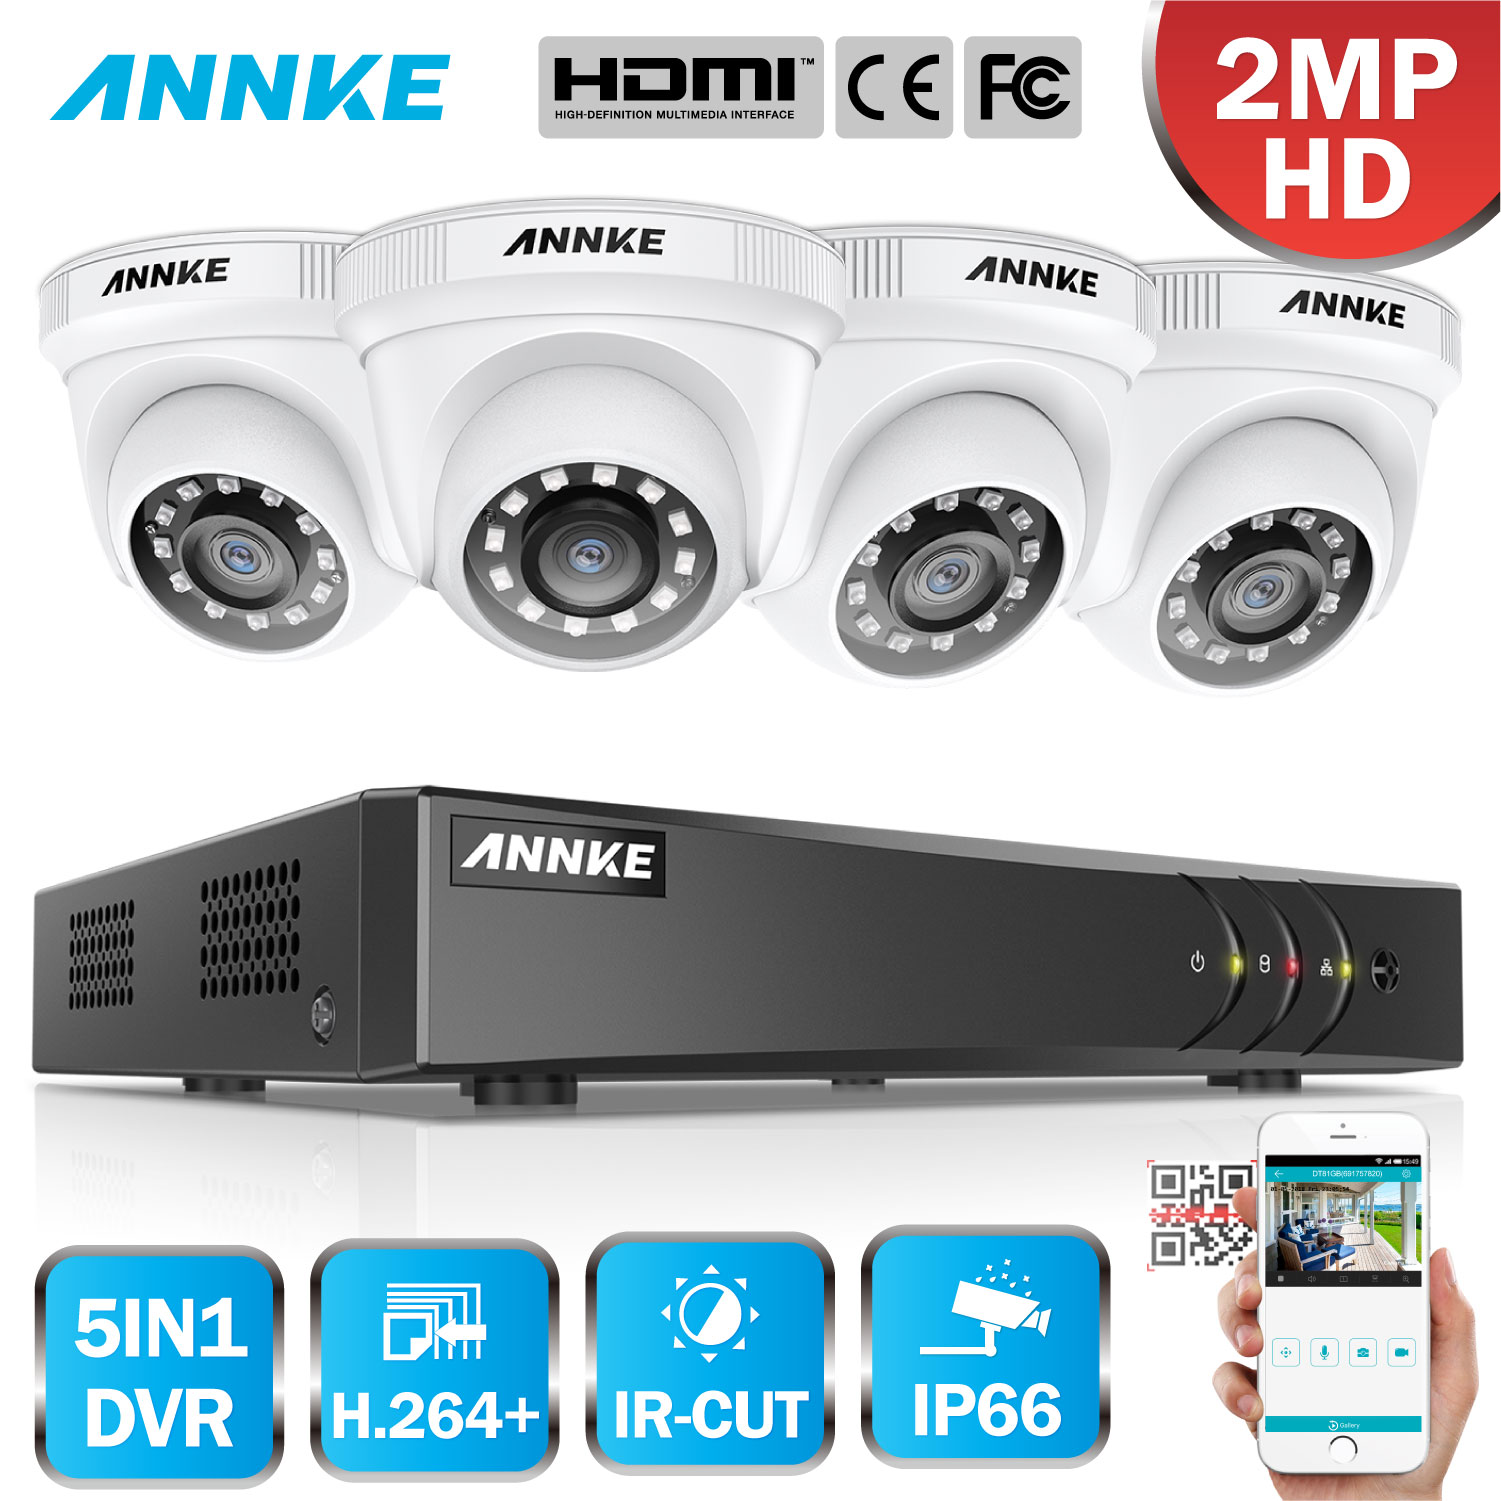 ANNKE 1080P 8CH Home Video Security System Lite H.264+ 5in1 1080N DVR 4PCS 1080P Smart IR Dome Outdoor Weatherproof CCTV Camera